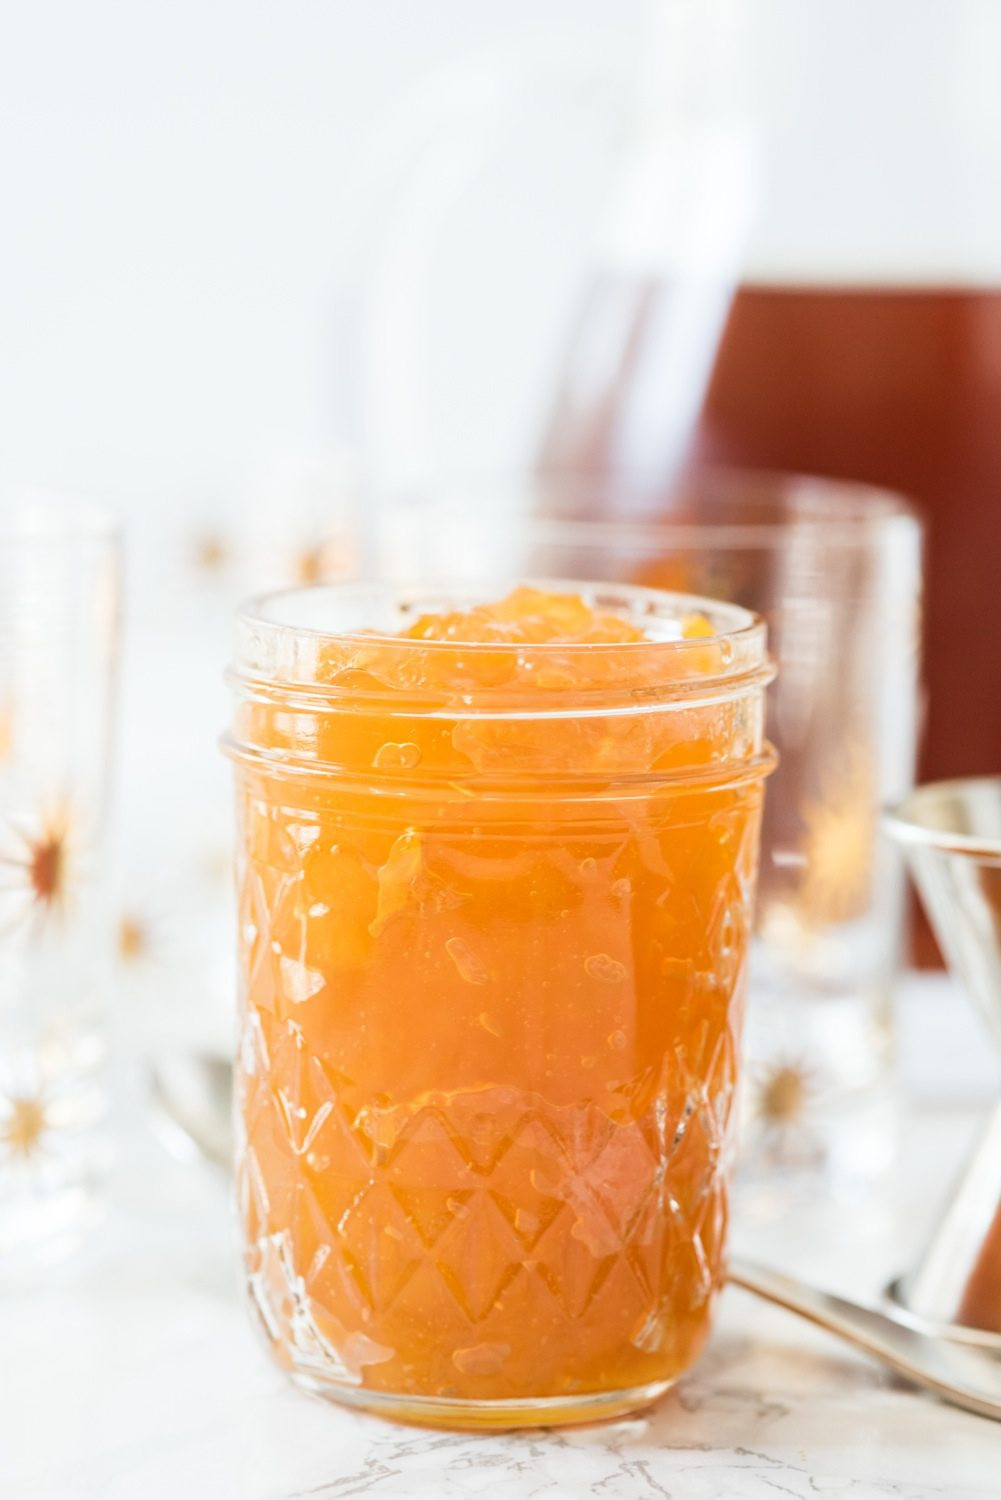 Peach Whiskey Drinks  Peach Whiskey Smash Cocktail The Sweetest Occasion